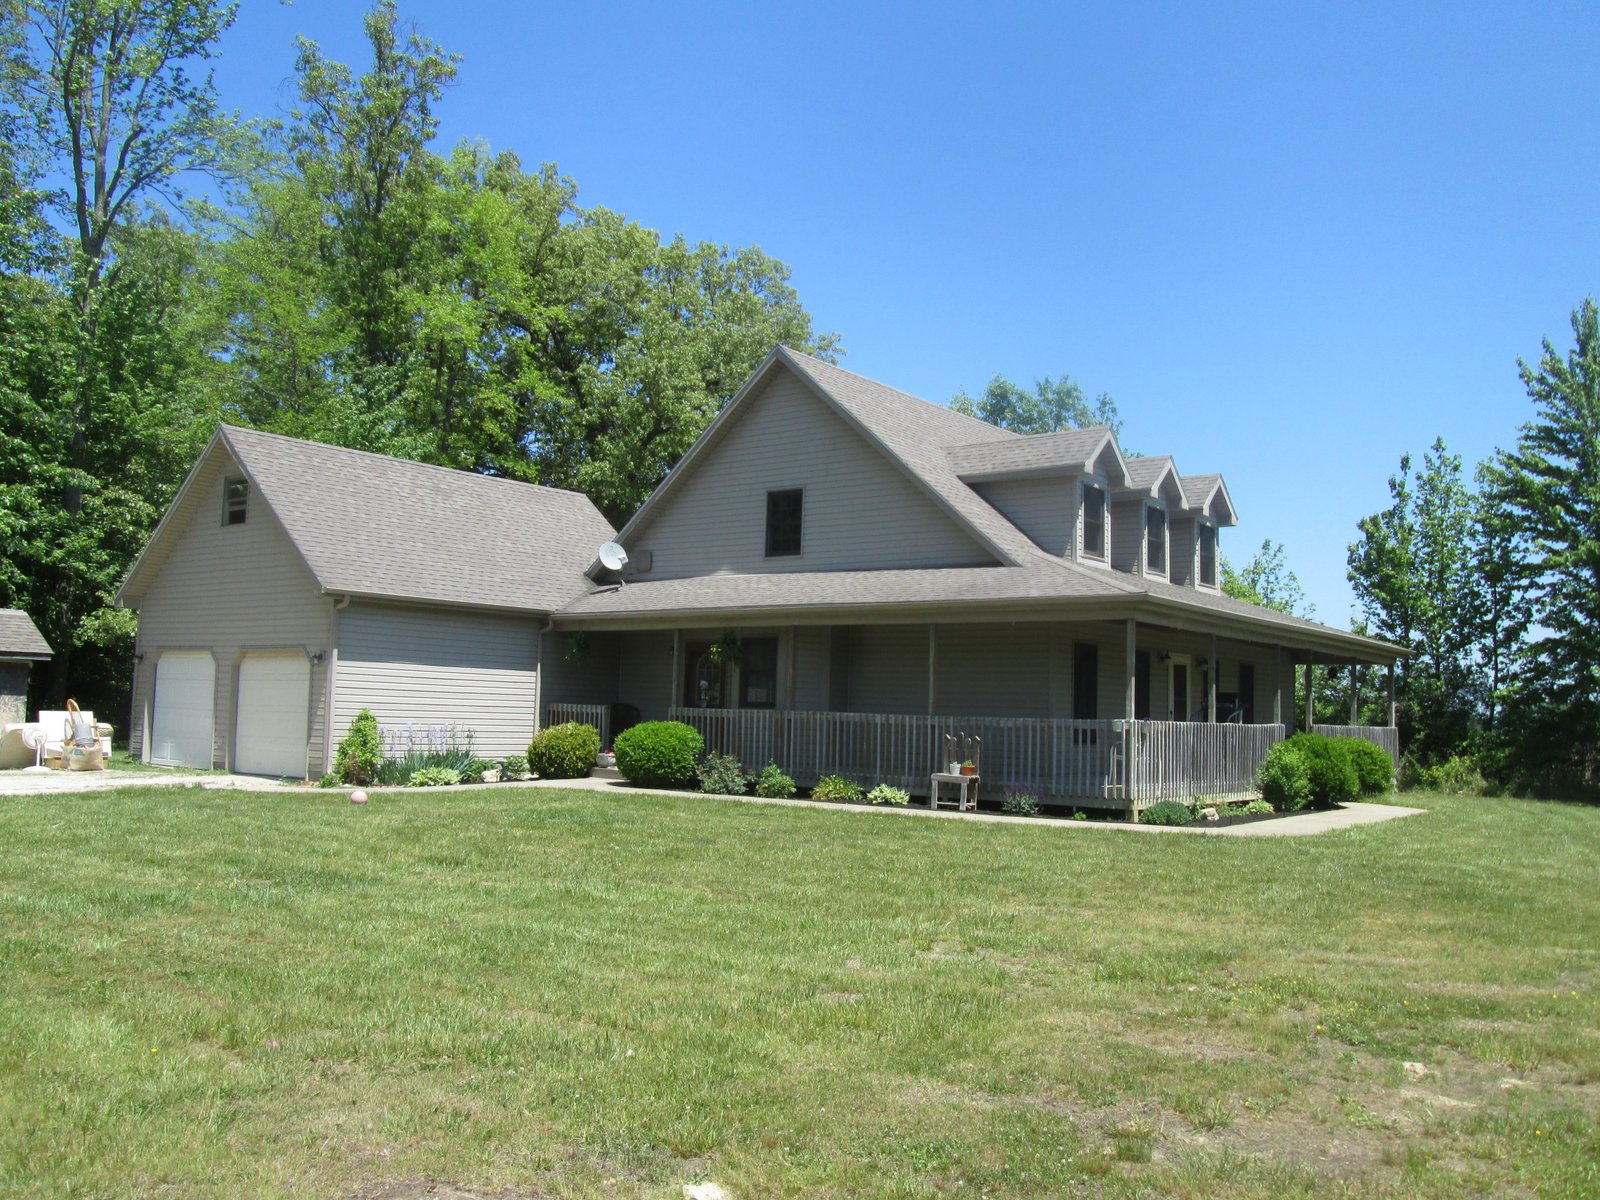 5689 W. Greenbriar Rd., Hanover, Indiana 47243